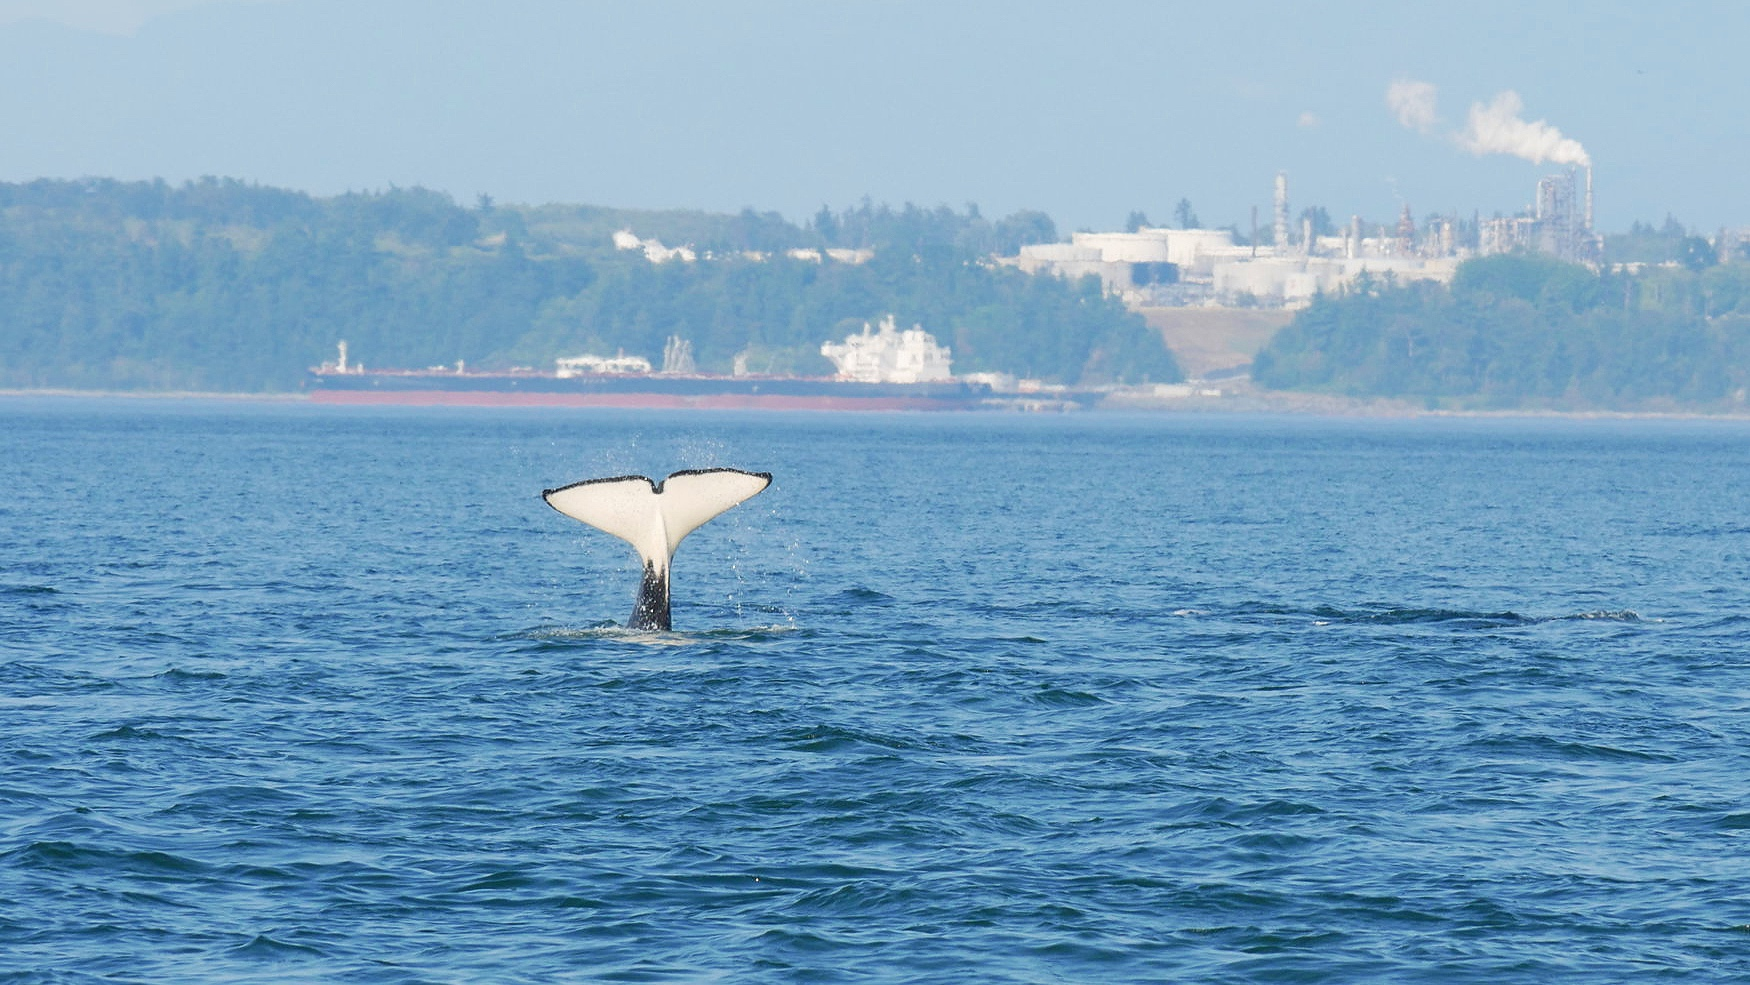 T65A6 showing off her tail! Photo by Rebeka Pirker (3.30)